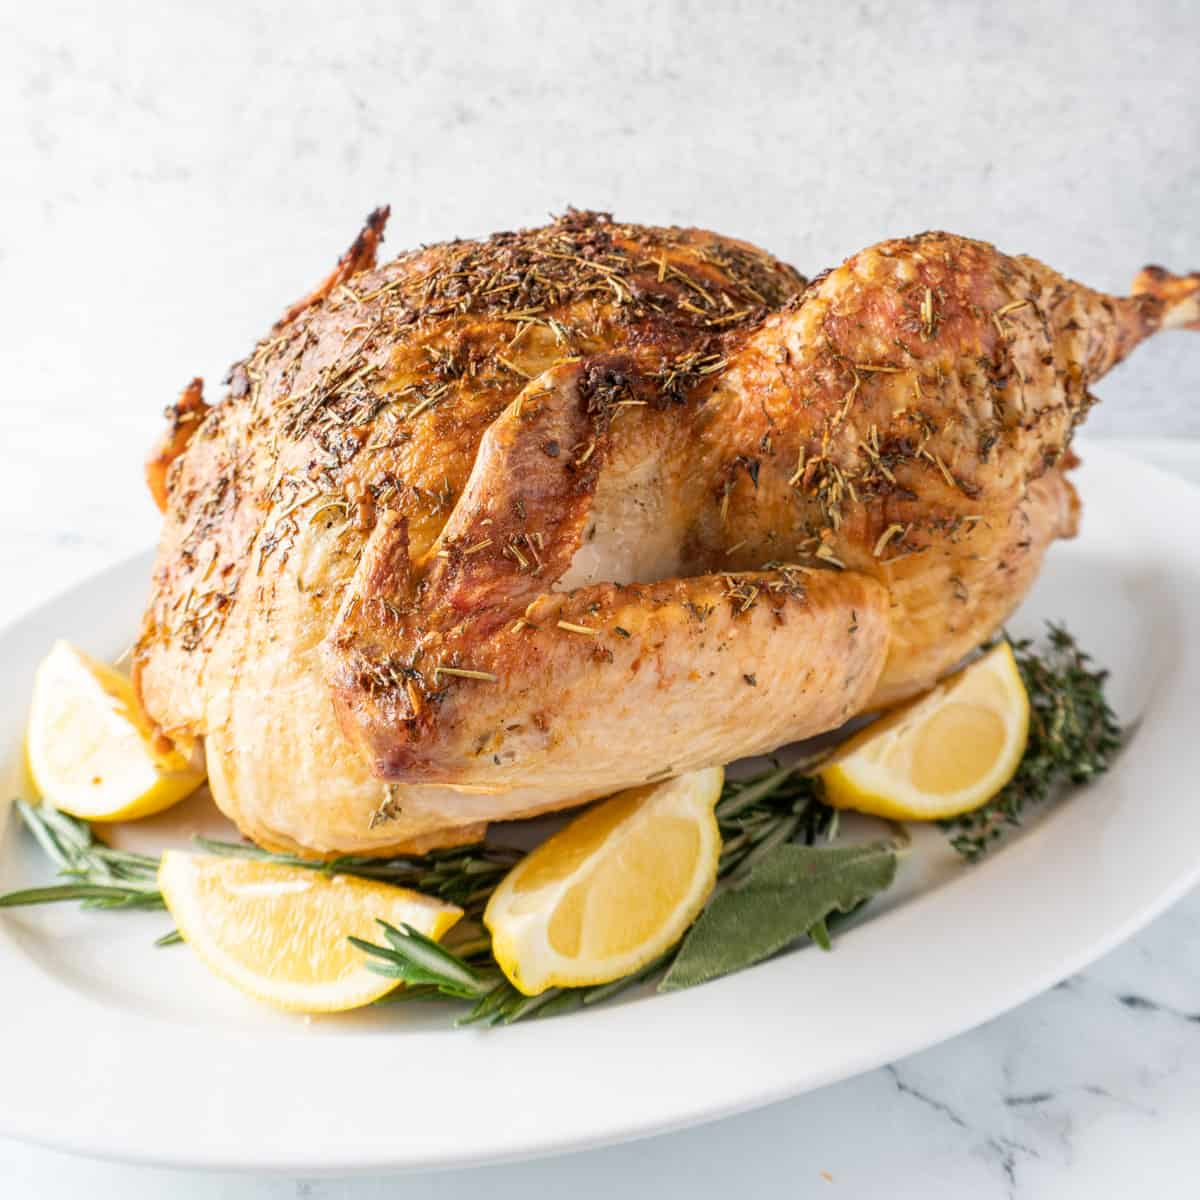 baked turkey on platter with lemon and sage leaves around it featured image